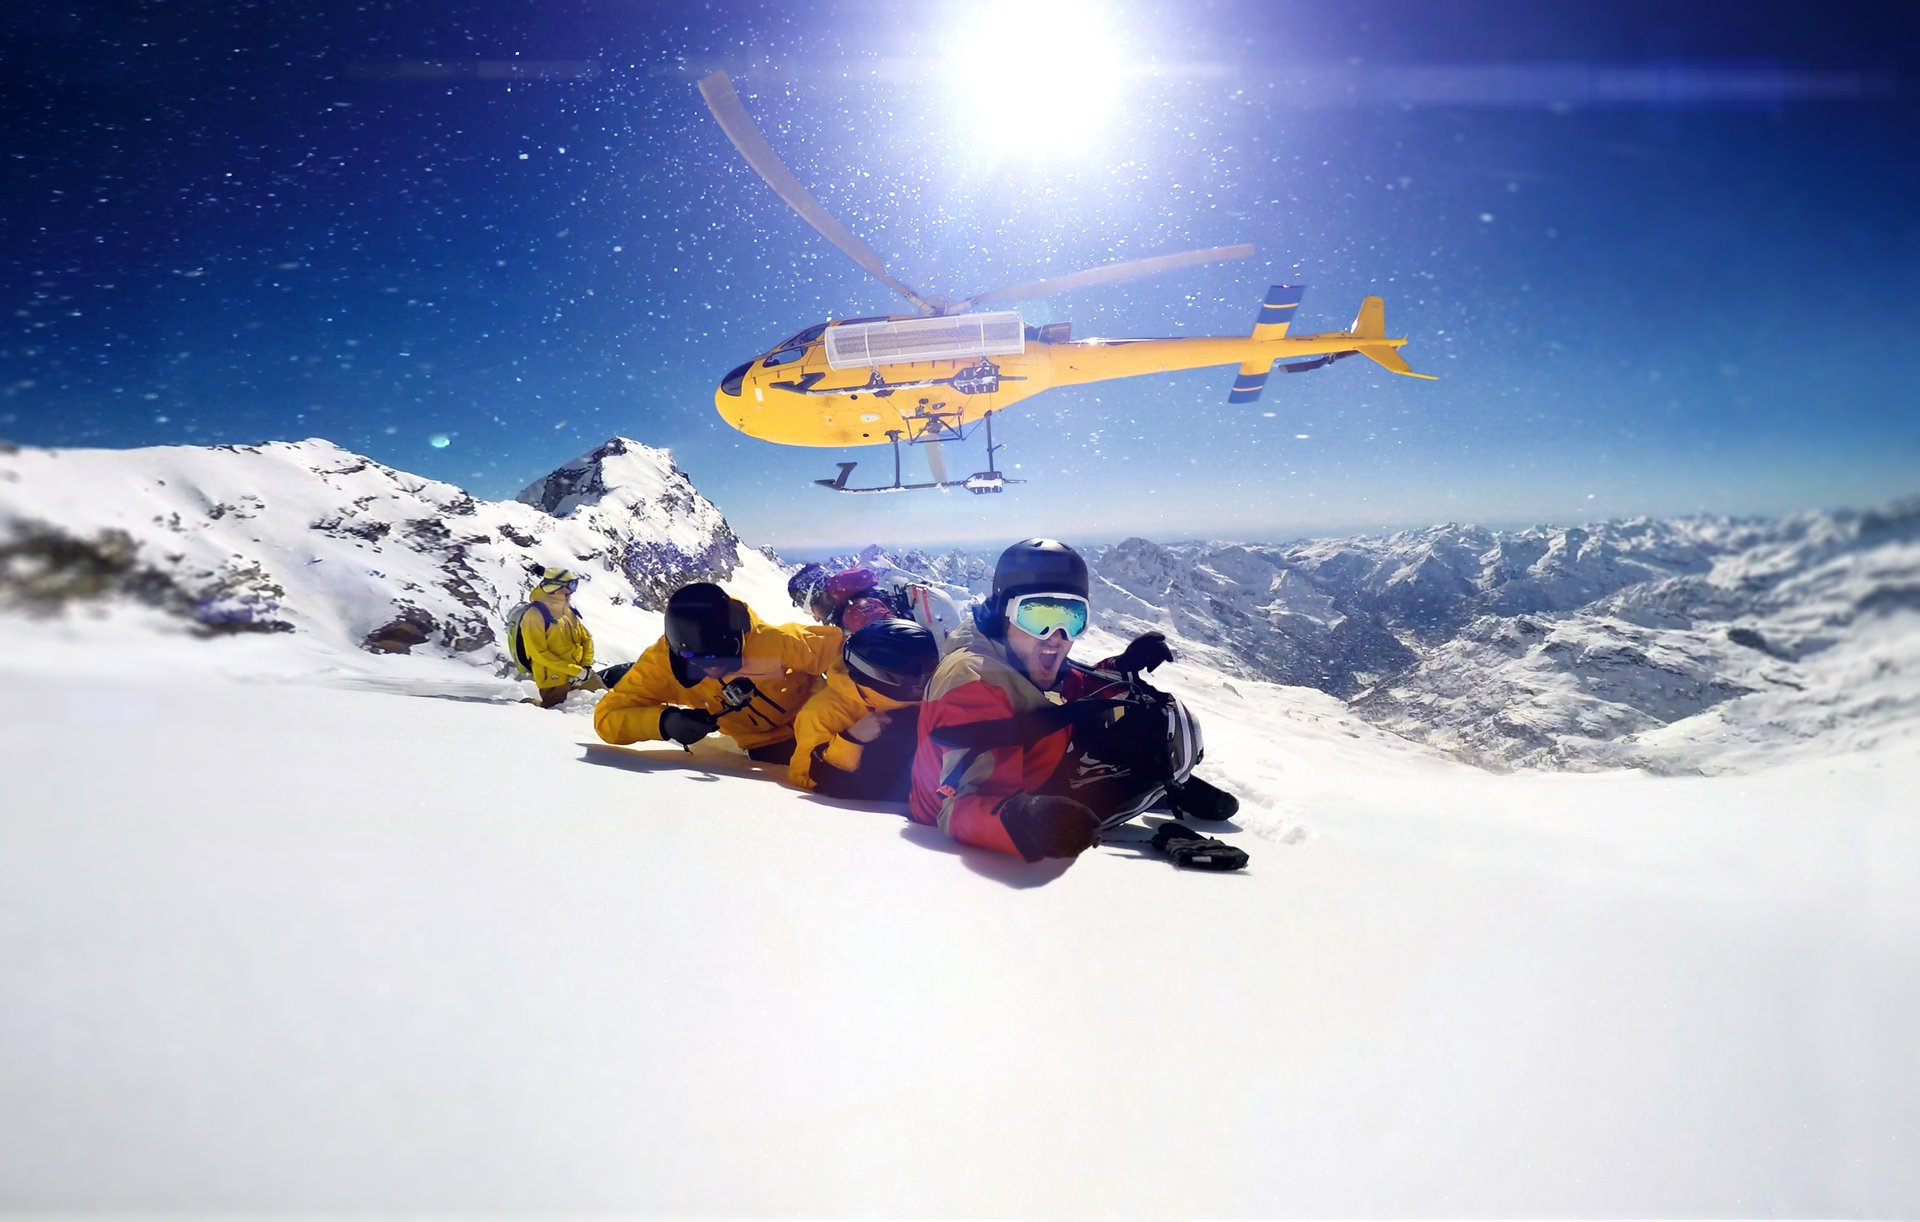 Heliskiing and Heliboarding in Austria 2020 - Best Time